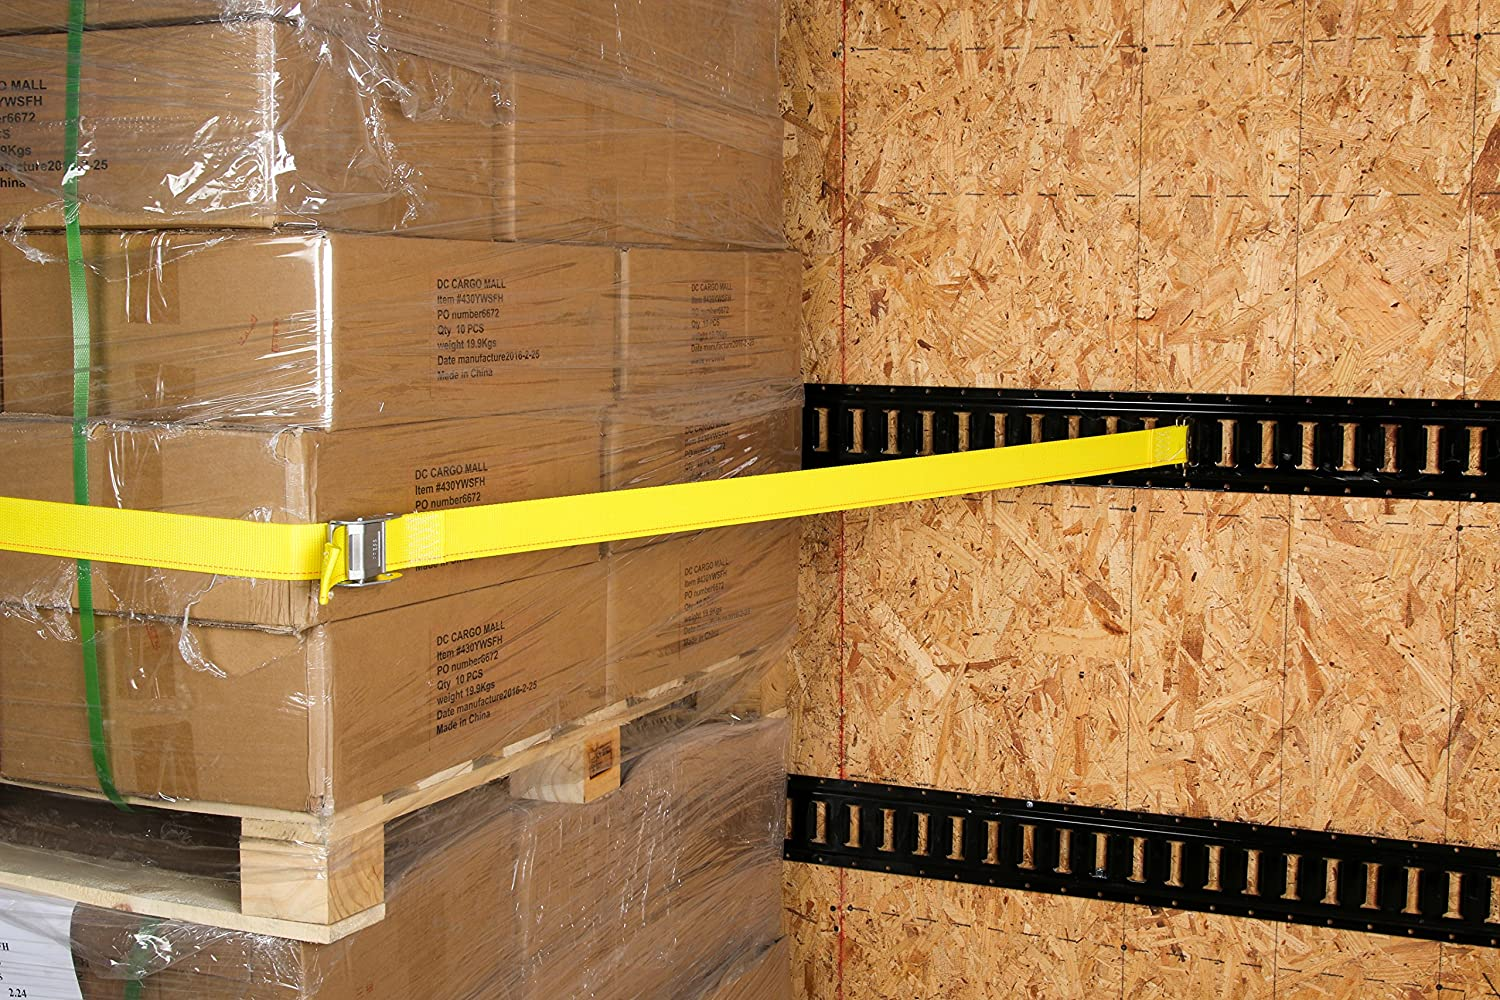 Secure Motorcycles and Quads with Cam Straps Trailers Vans 10 Tie-Down Straps Boats 2 x 12 Cam Buckle TieDown Straps for Cargo on Trucks